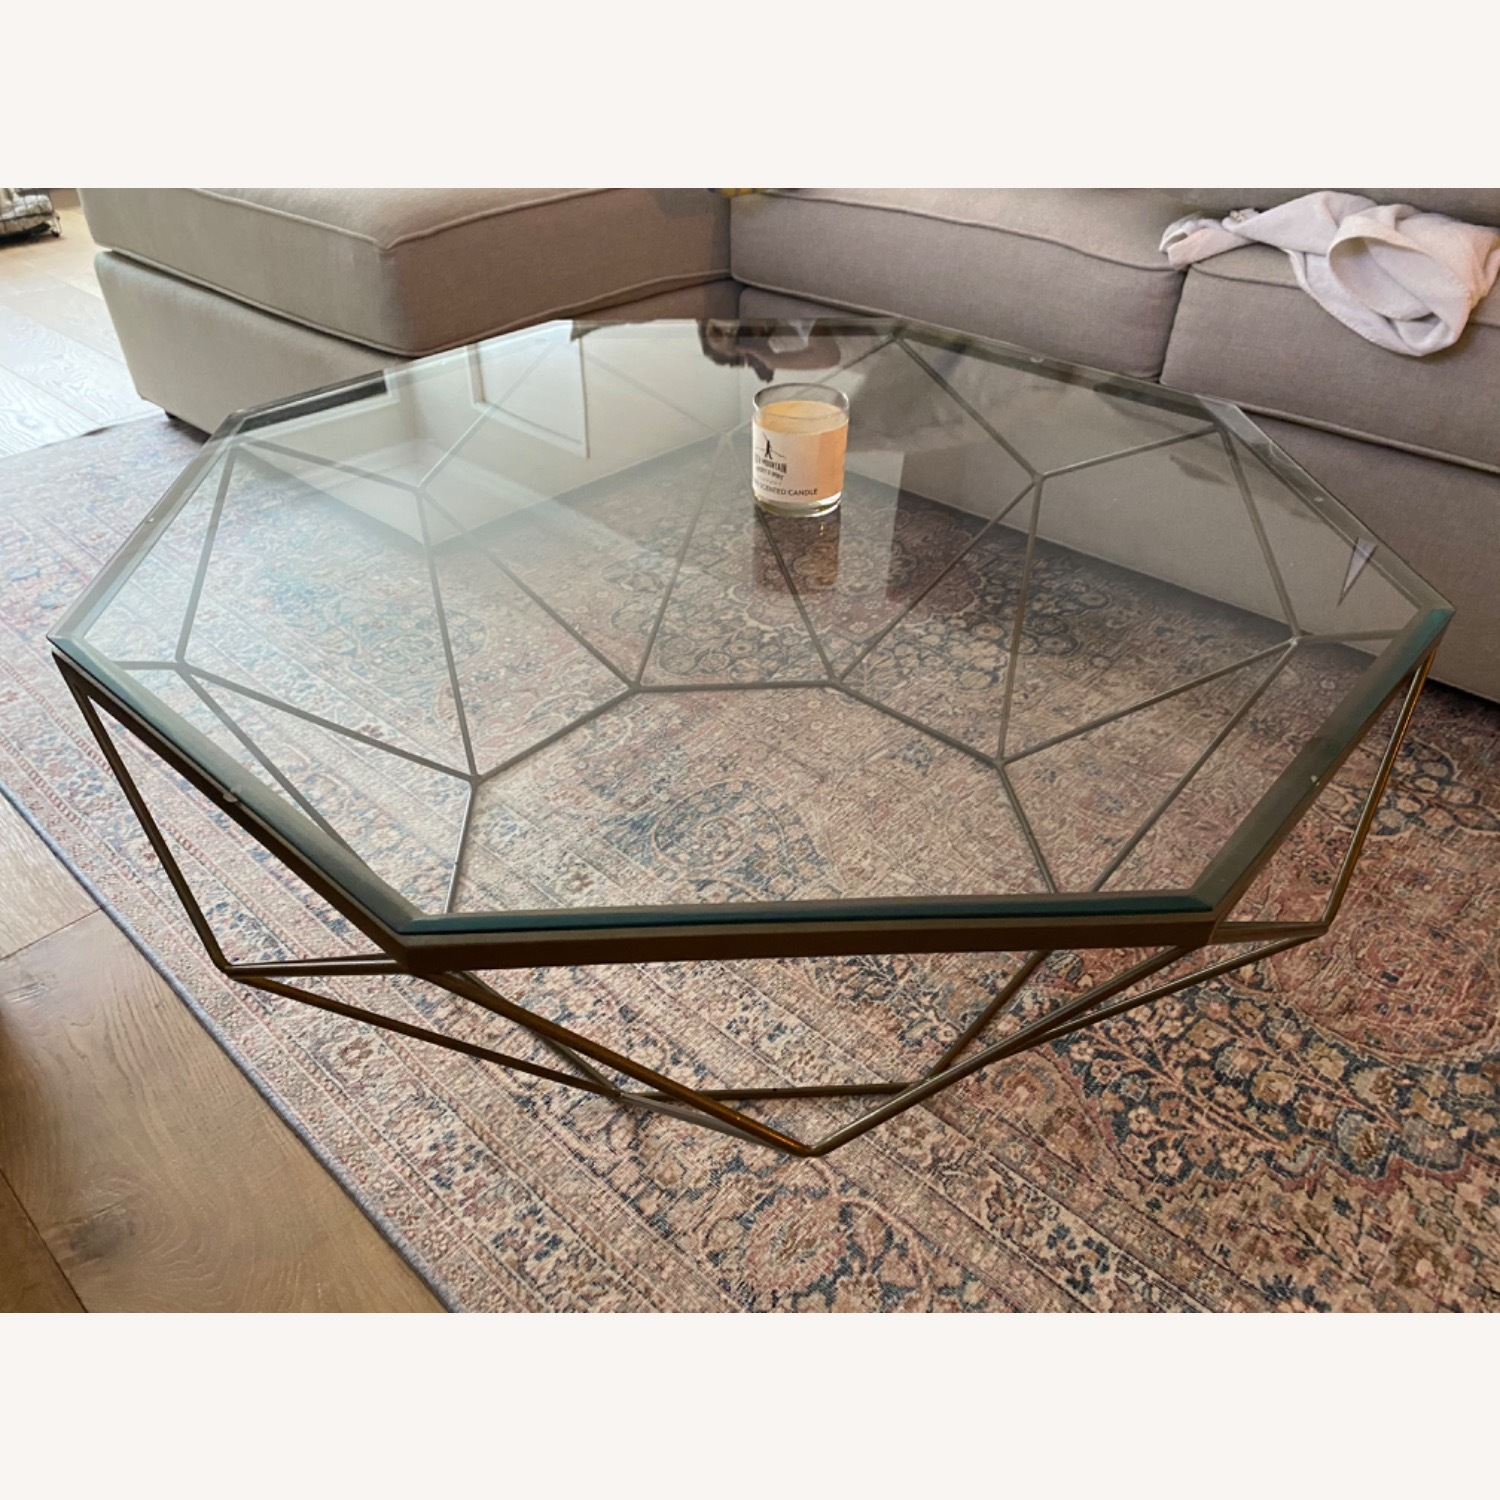 Four Hands Geometric Coffee Table - image-2